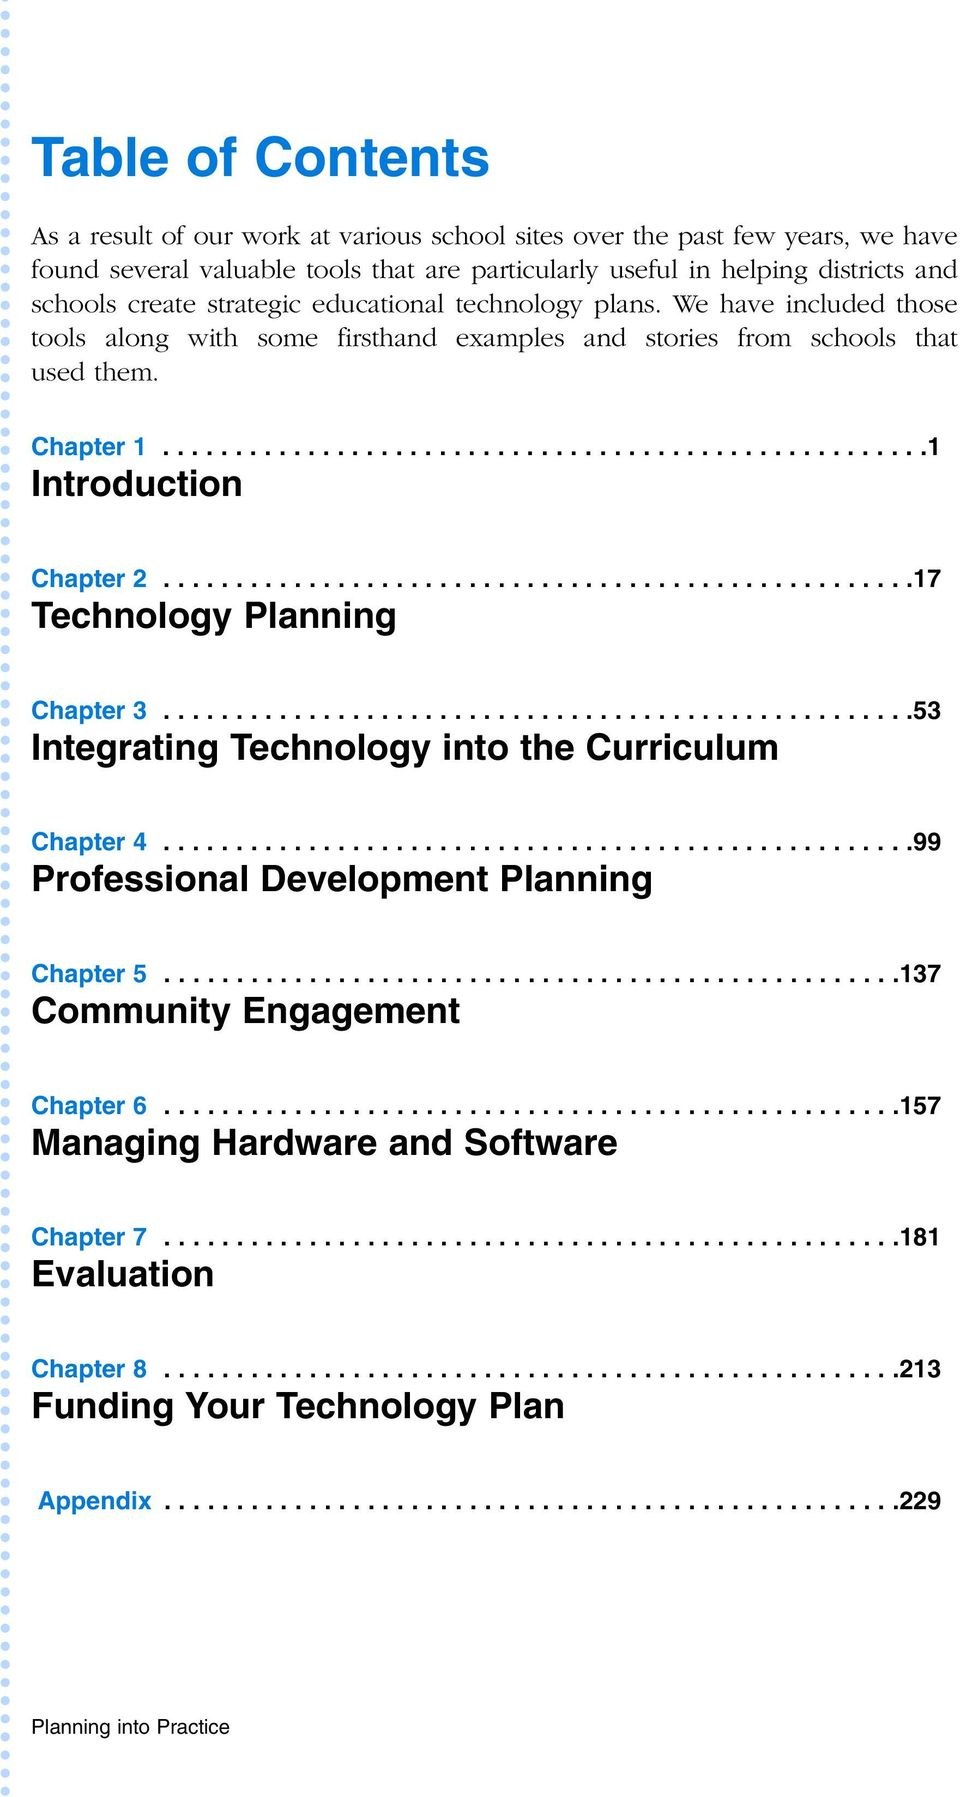 ...................................................17 Technology Planning Chapter 3....................................................53 Integrating Technology into the Curriculum Chapter 4.